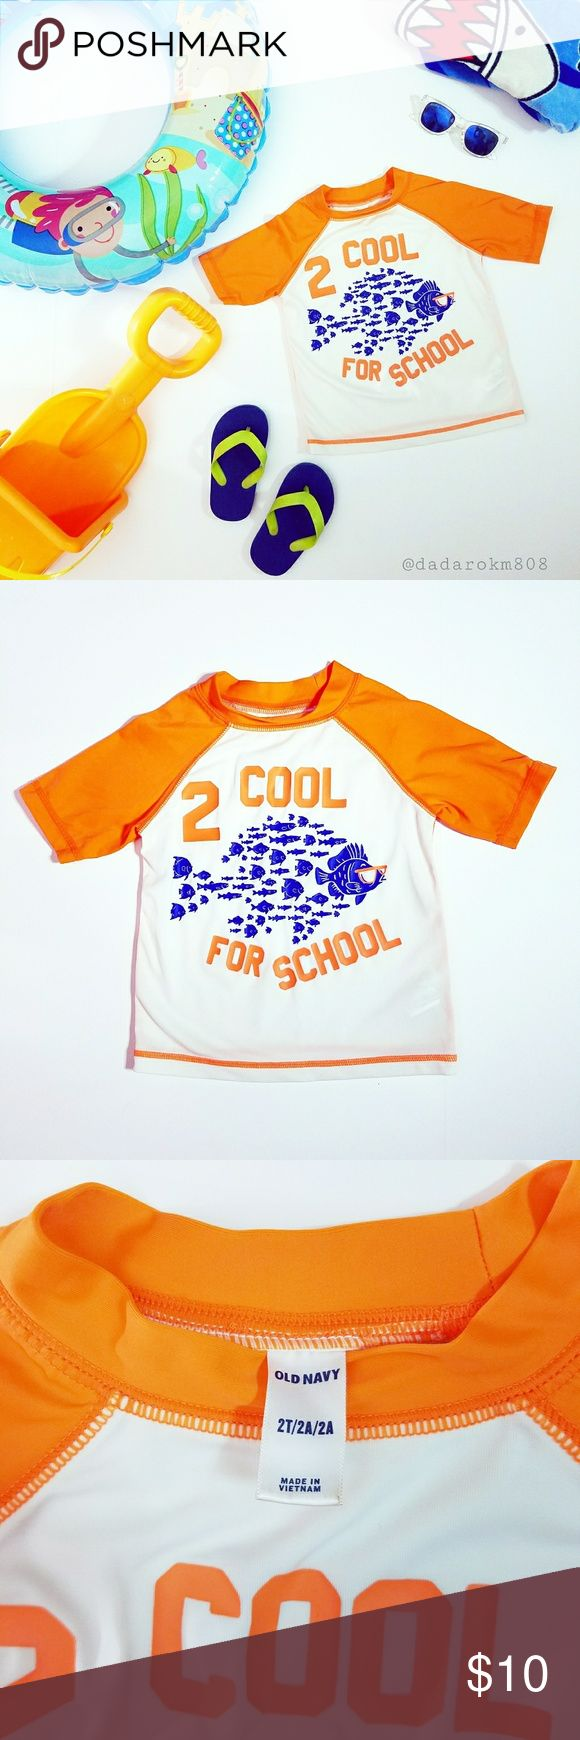 "Old Navy 2 Cool For School Rash Guard (size 2T) No caption needed! Your little tyke will definitely stand out from the rest of the school of fish, in this cute little swim top! 🐟 2 Cool For School 🐟, for sure lol! Gently used and in good condition. Measurements: overall length is 13.5"" long, 11"" across chest, arms are approx. 7.5"" in length. Much Mahalo for checking it out! Offers welcomed as always 😉🤙🏼 Old Navy Swim Rashguards"